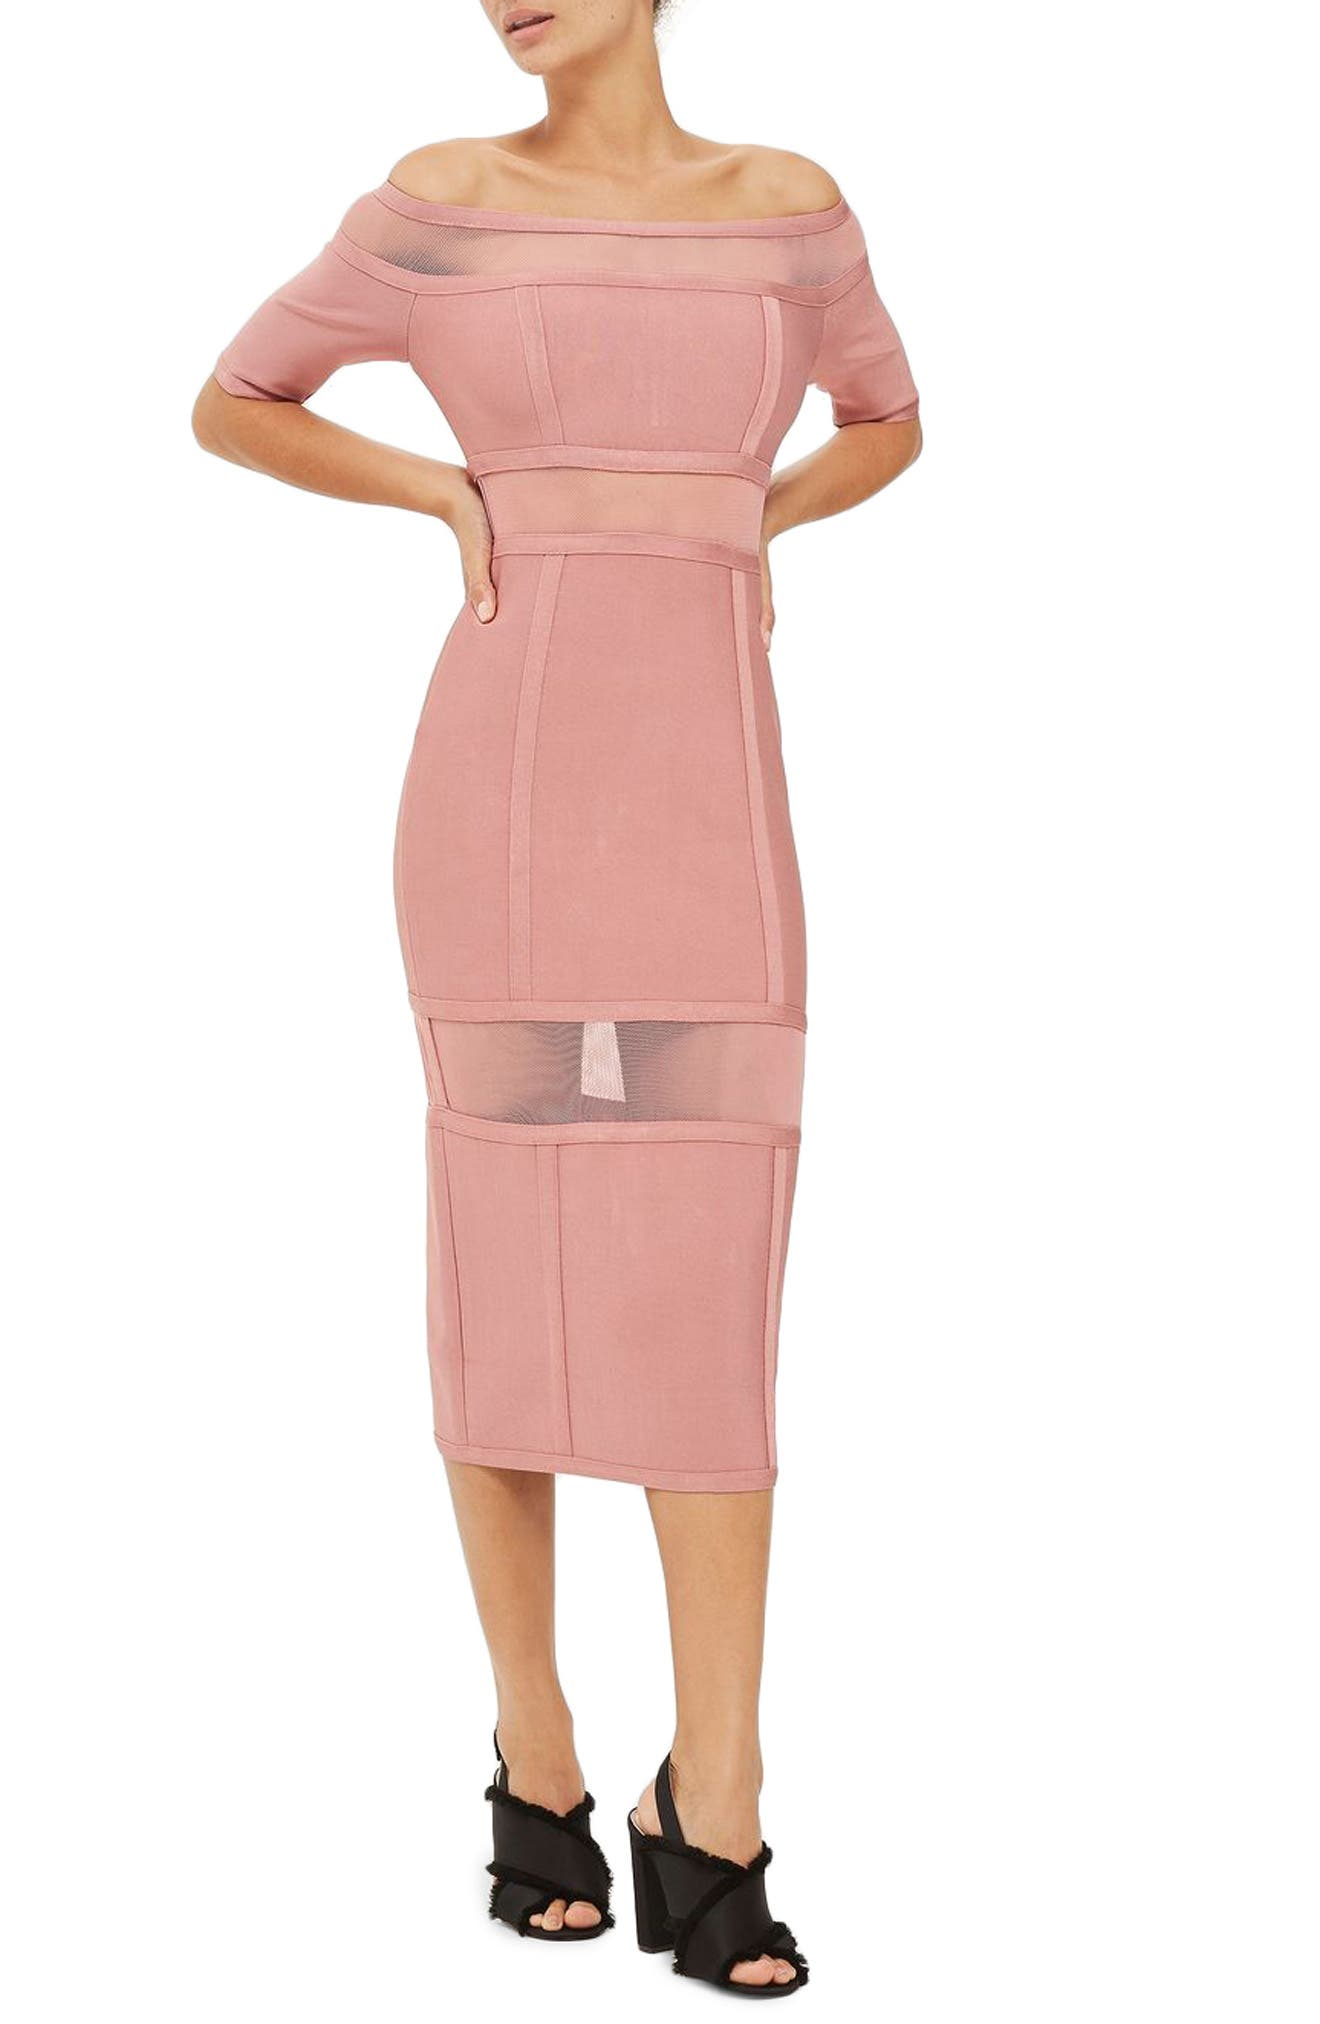 Alternate Image 1 Selected - Topshop Sheer Panel Off the Shoulder Body-Con Midi Dress